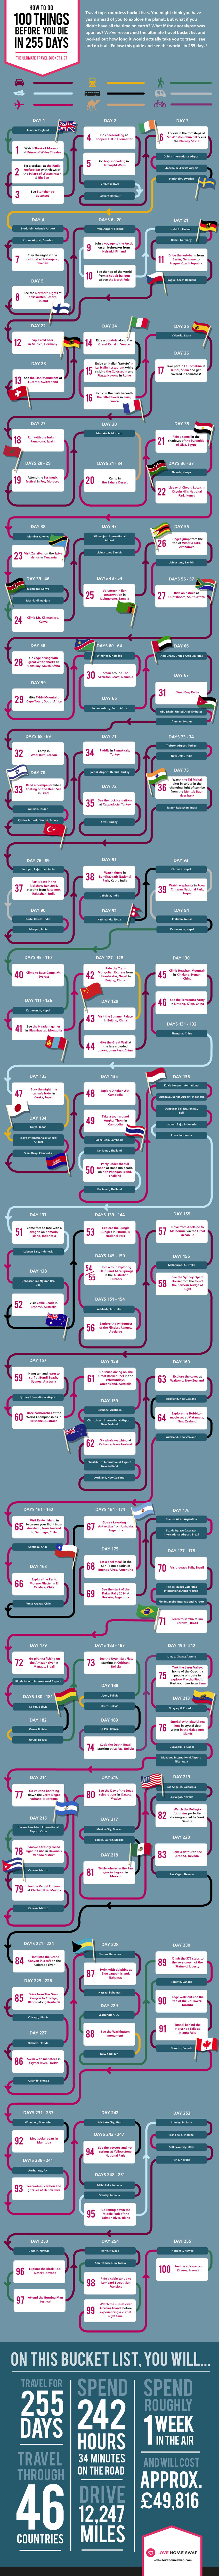 How To Do 100 Things Before You Die In 255 Days